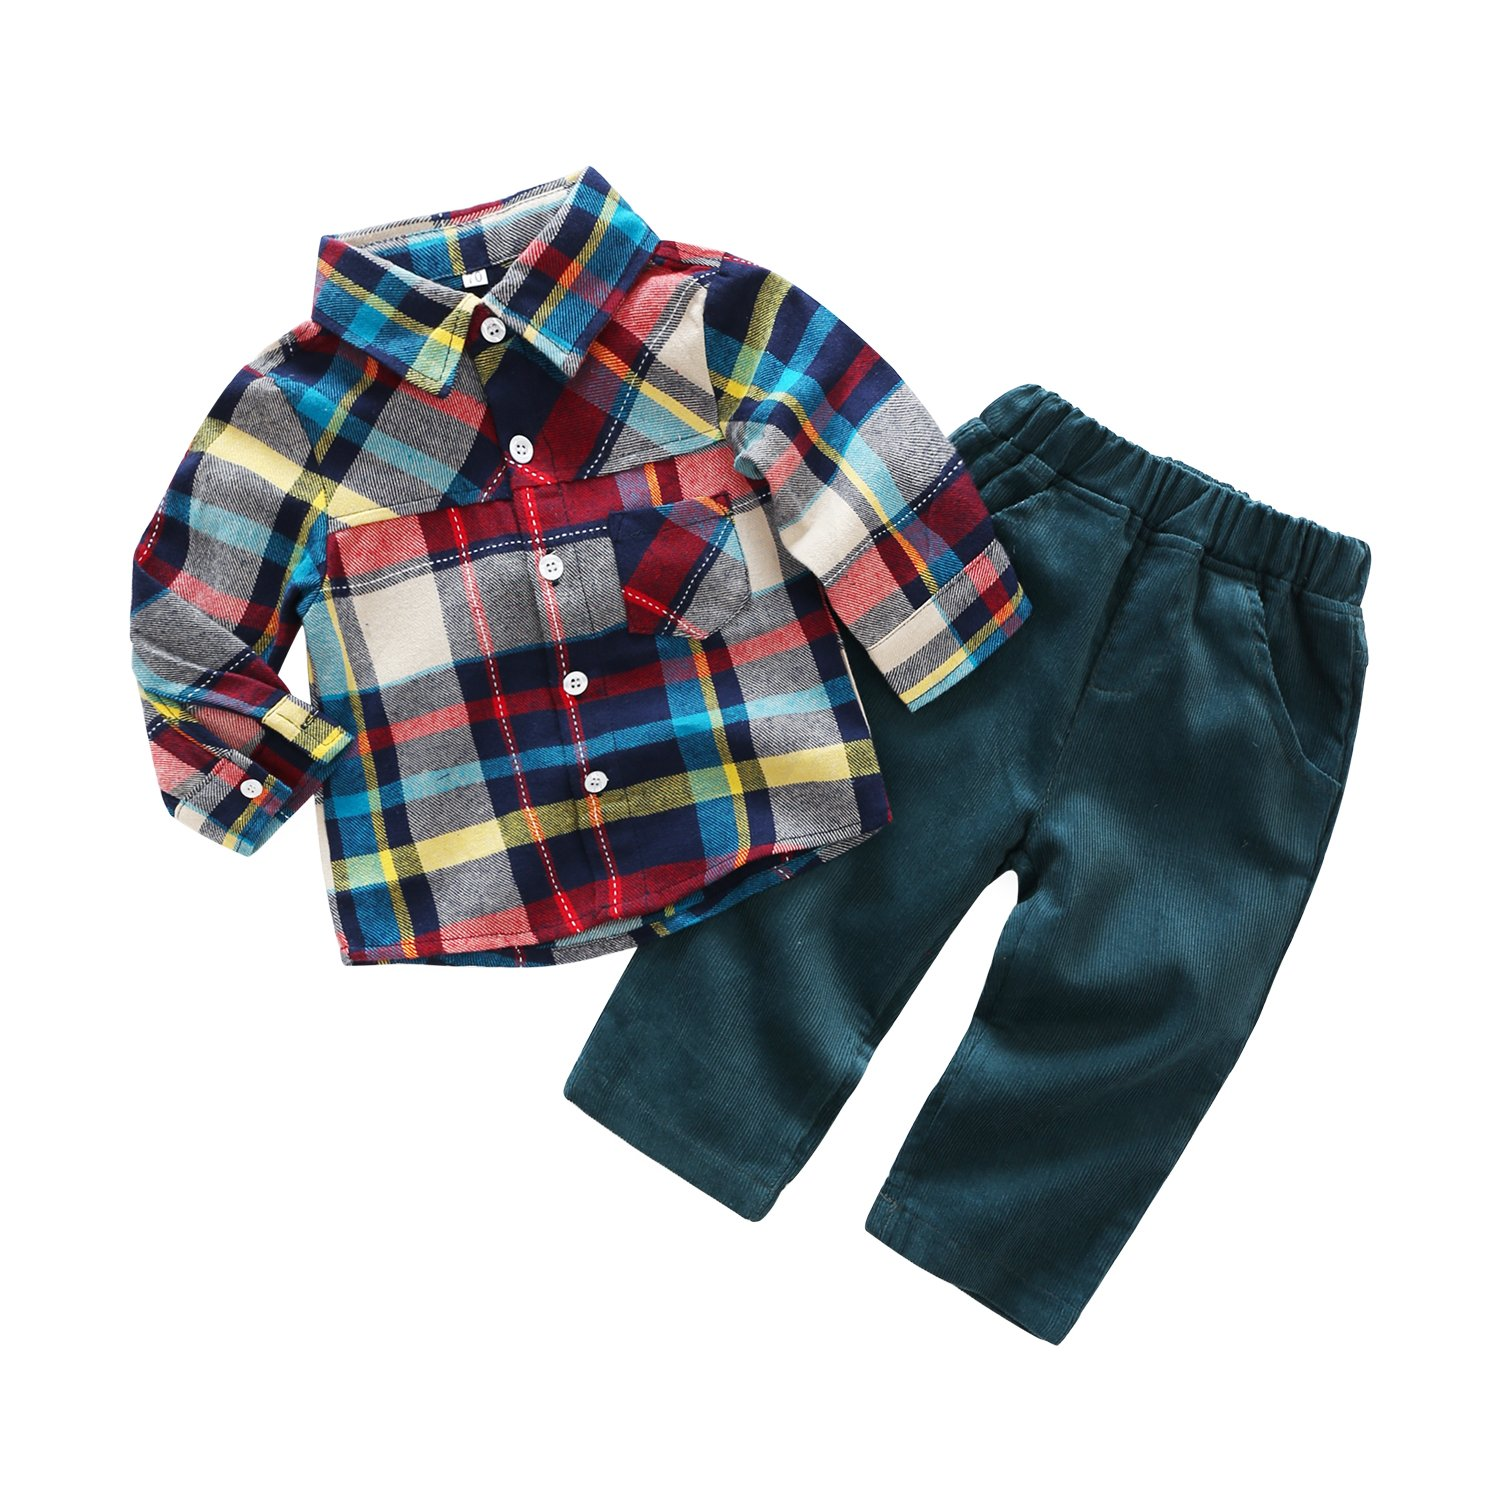 Newborn Baby Casual Suit 2pcs Cotton Long Sleeve Plaid Button-Down Shirt Pant Outfits Boys Clothes Set (12/18M)